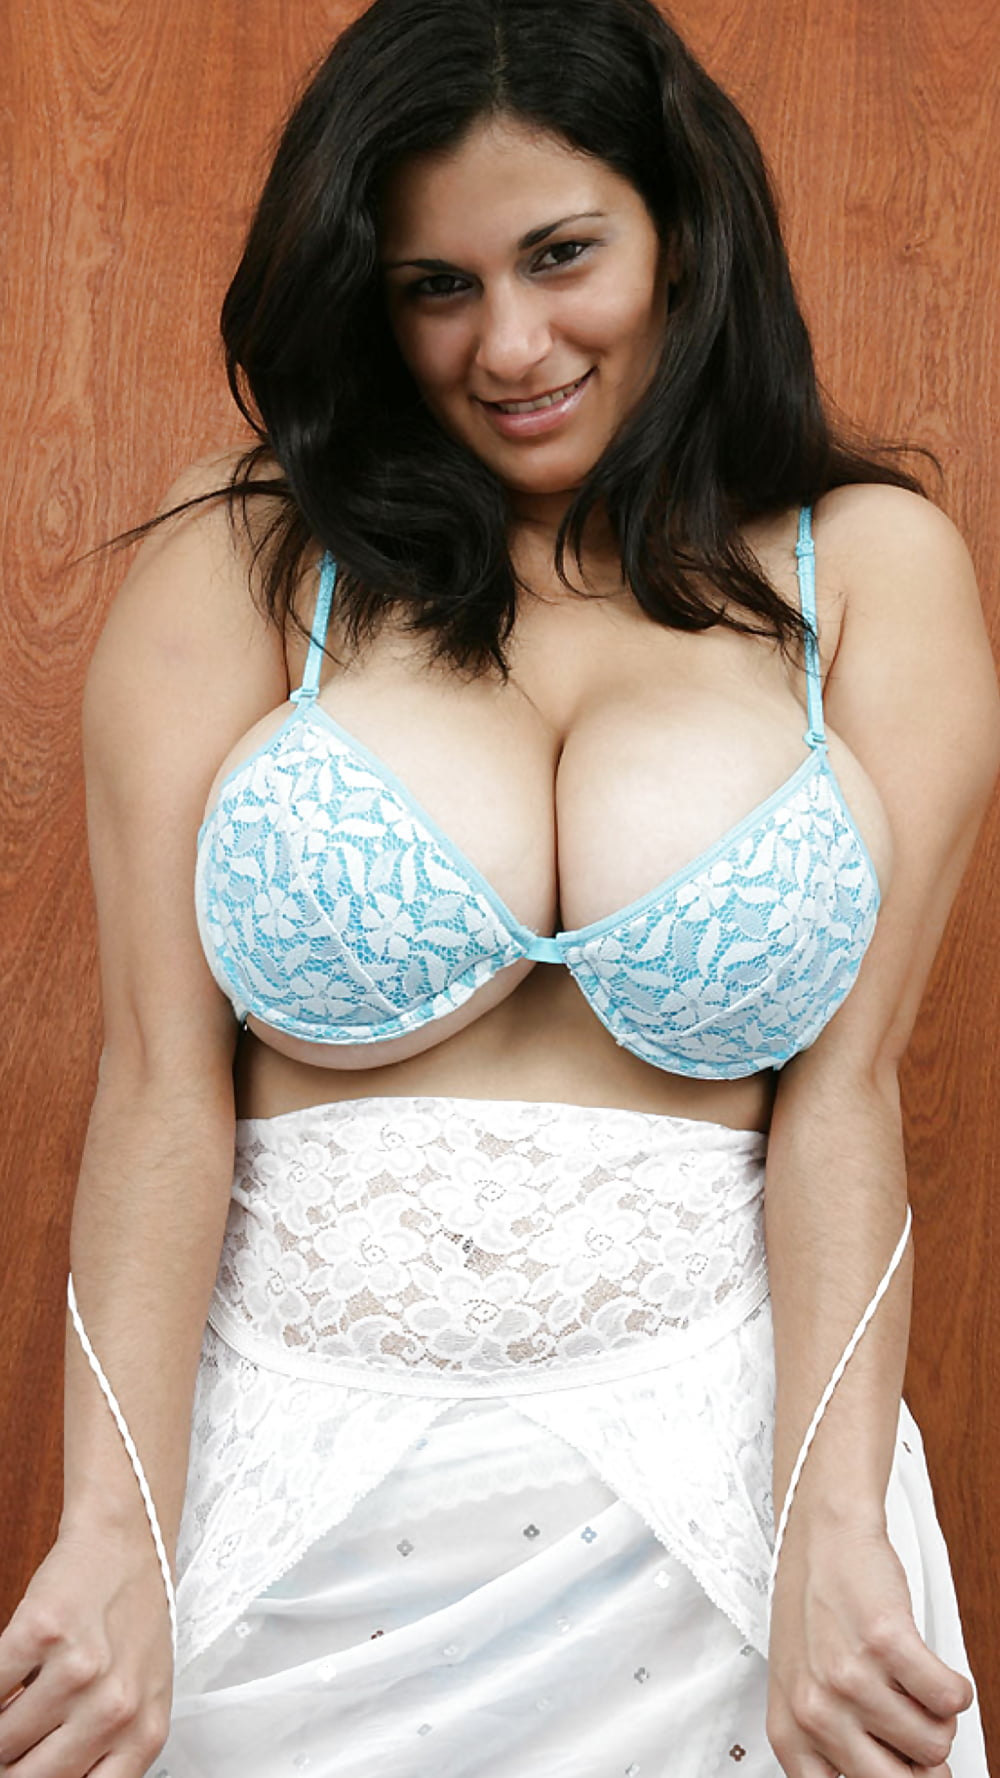 big-boobs-bra-movies-big-boob-nude-smart-girls